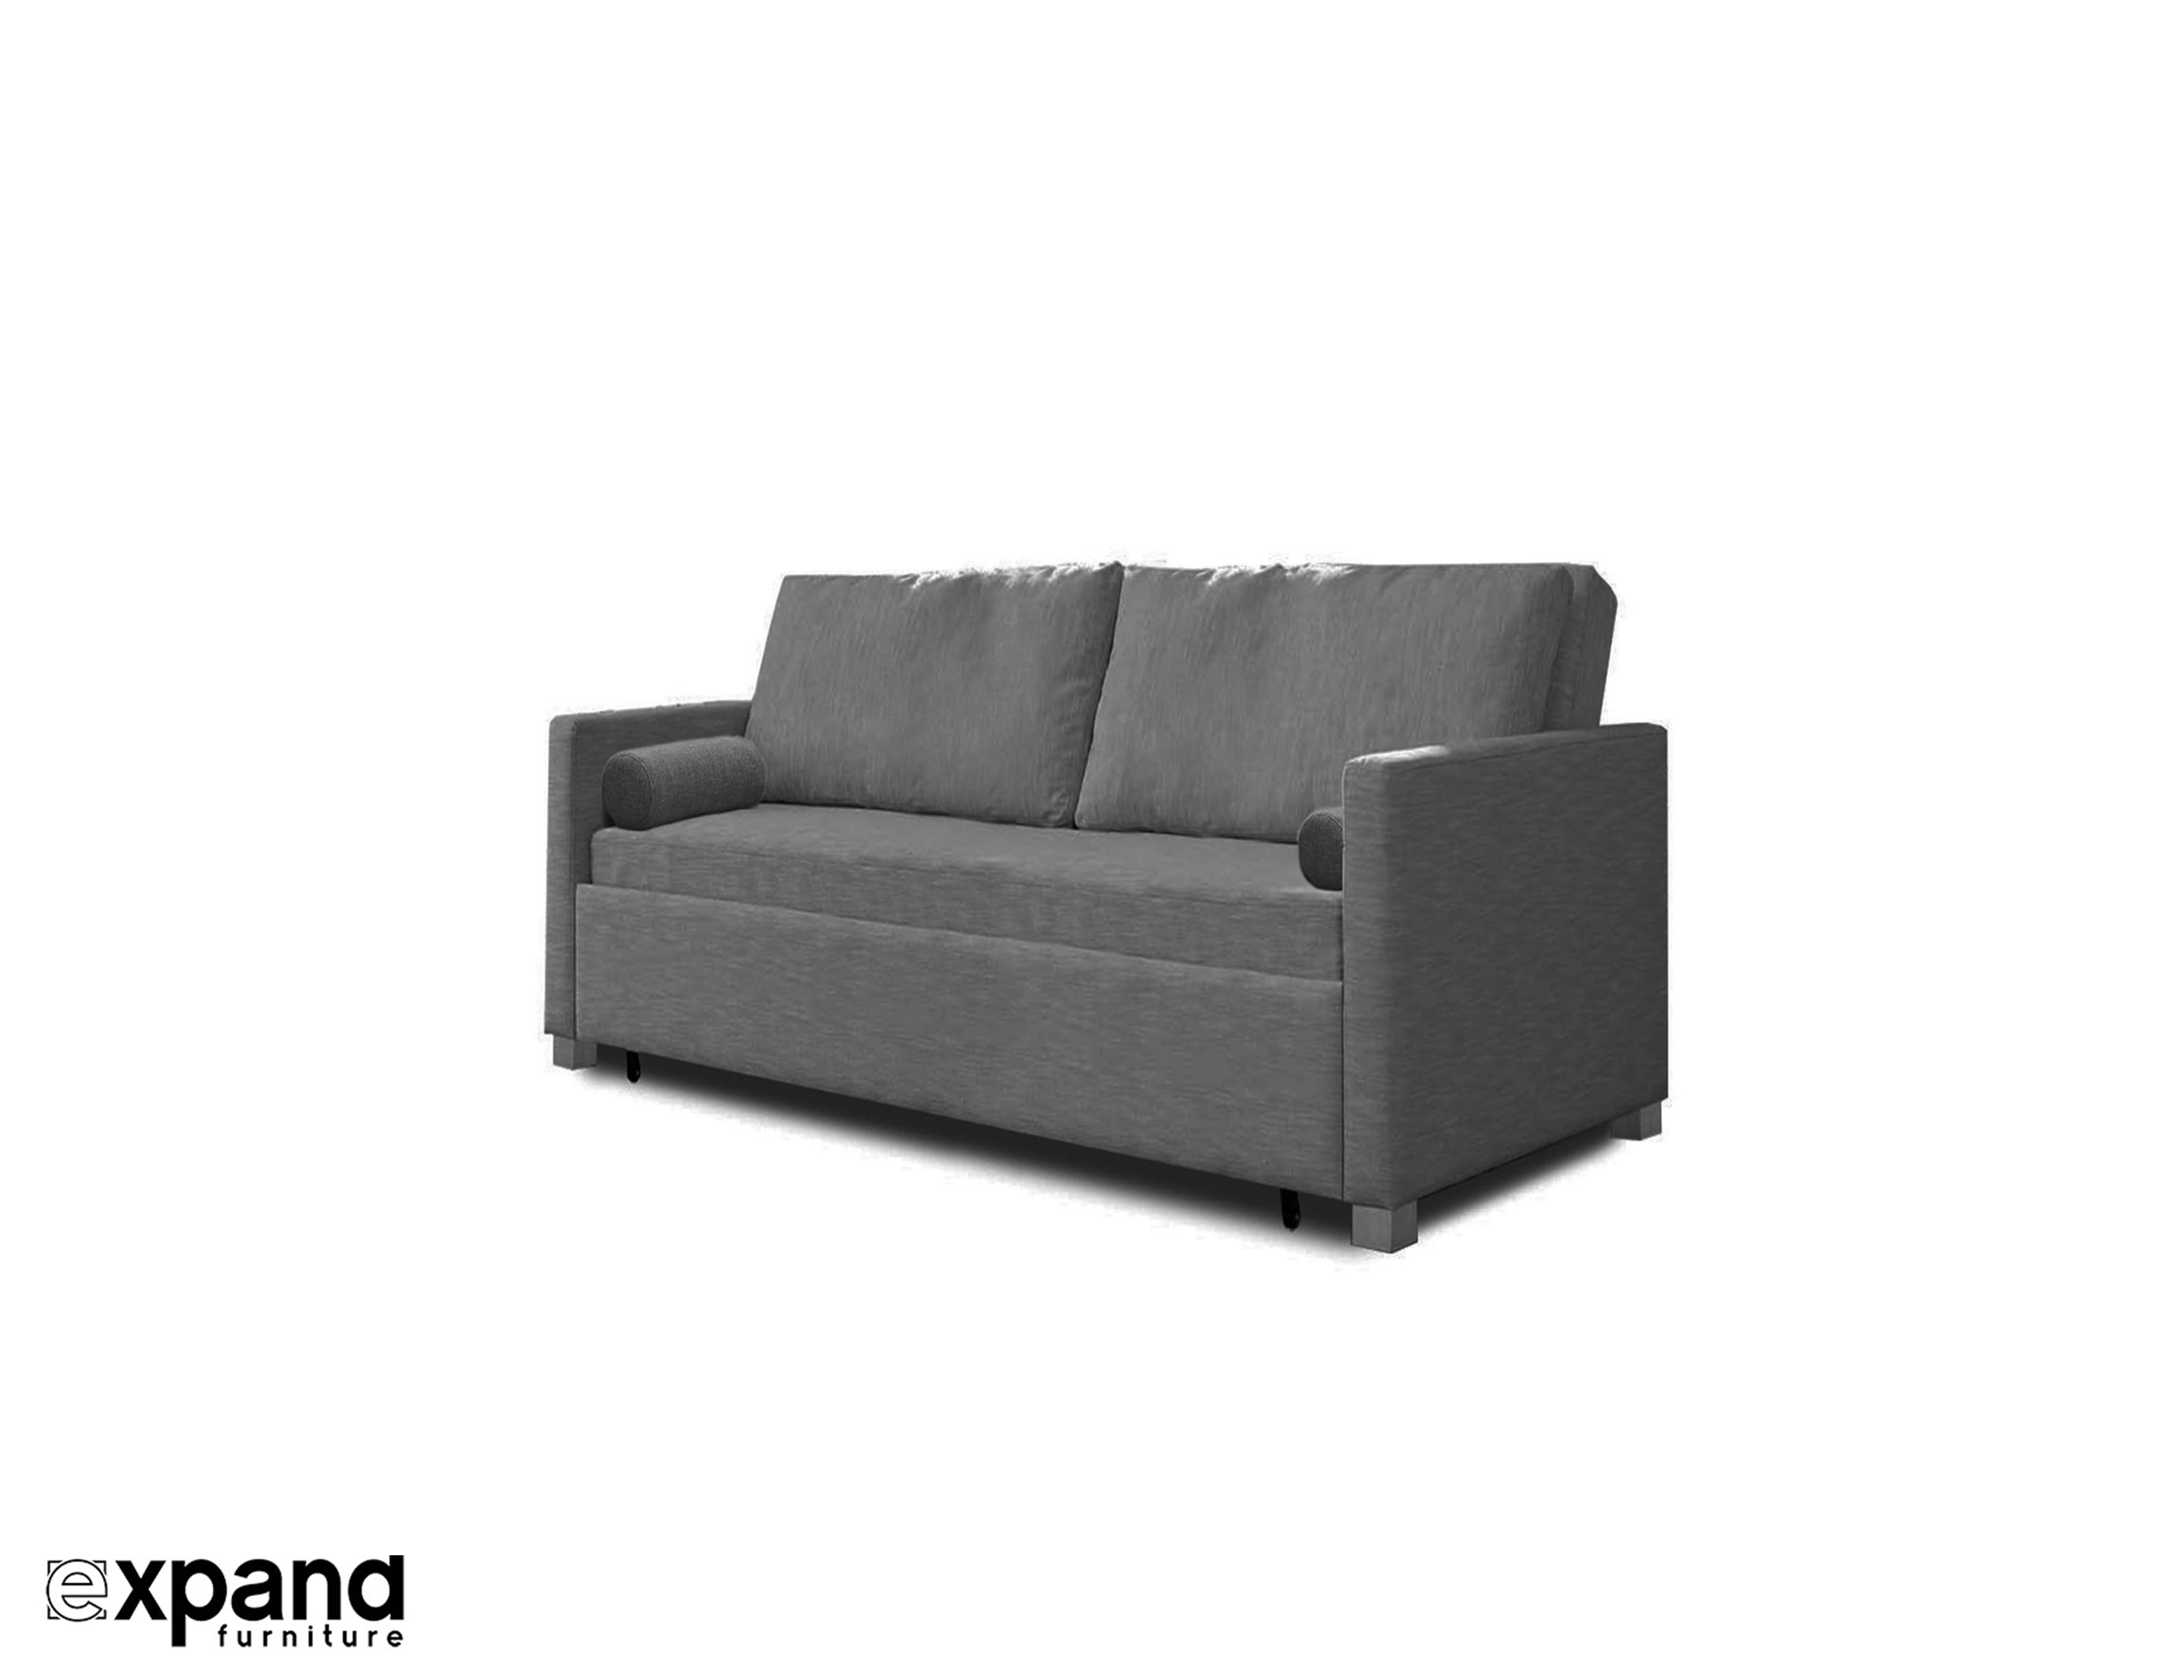 Space Saving Furniture | Convertible Wall Beds, Tables & More Inside Escondido Sofa Chairs (Image 17 of 20)